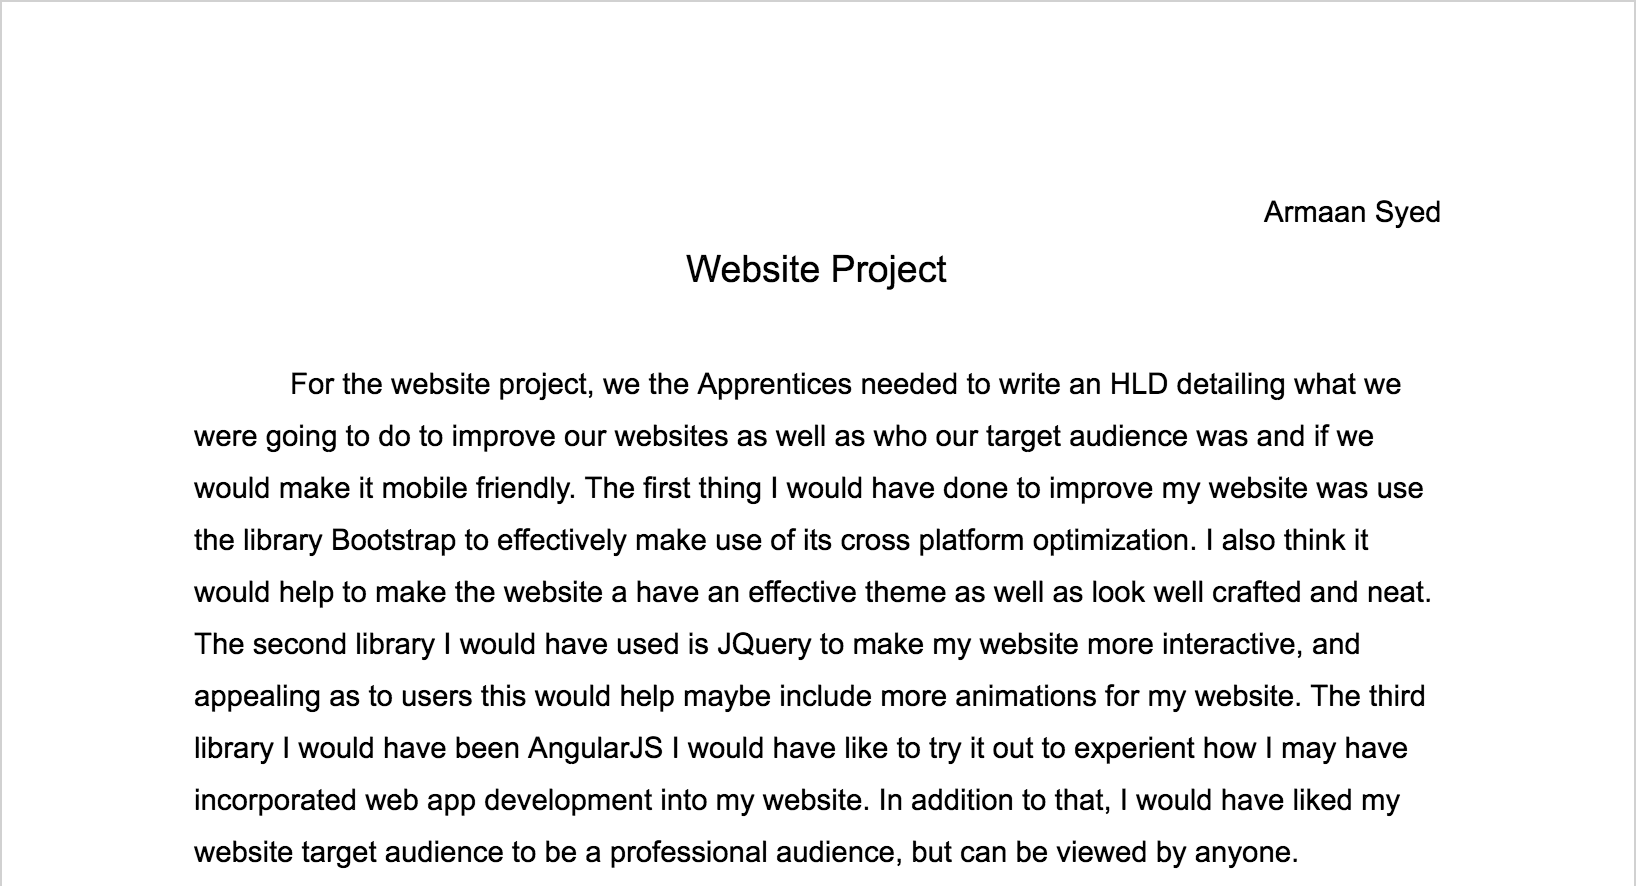 armaan s website this a website project i was not able to do due to time but here is an essay detailing what i would have done